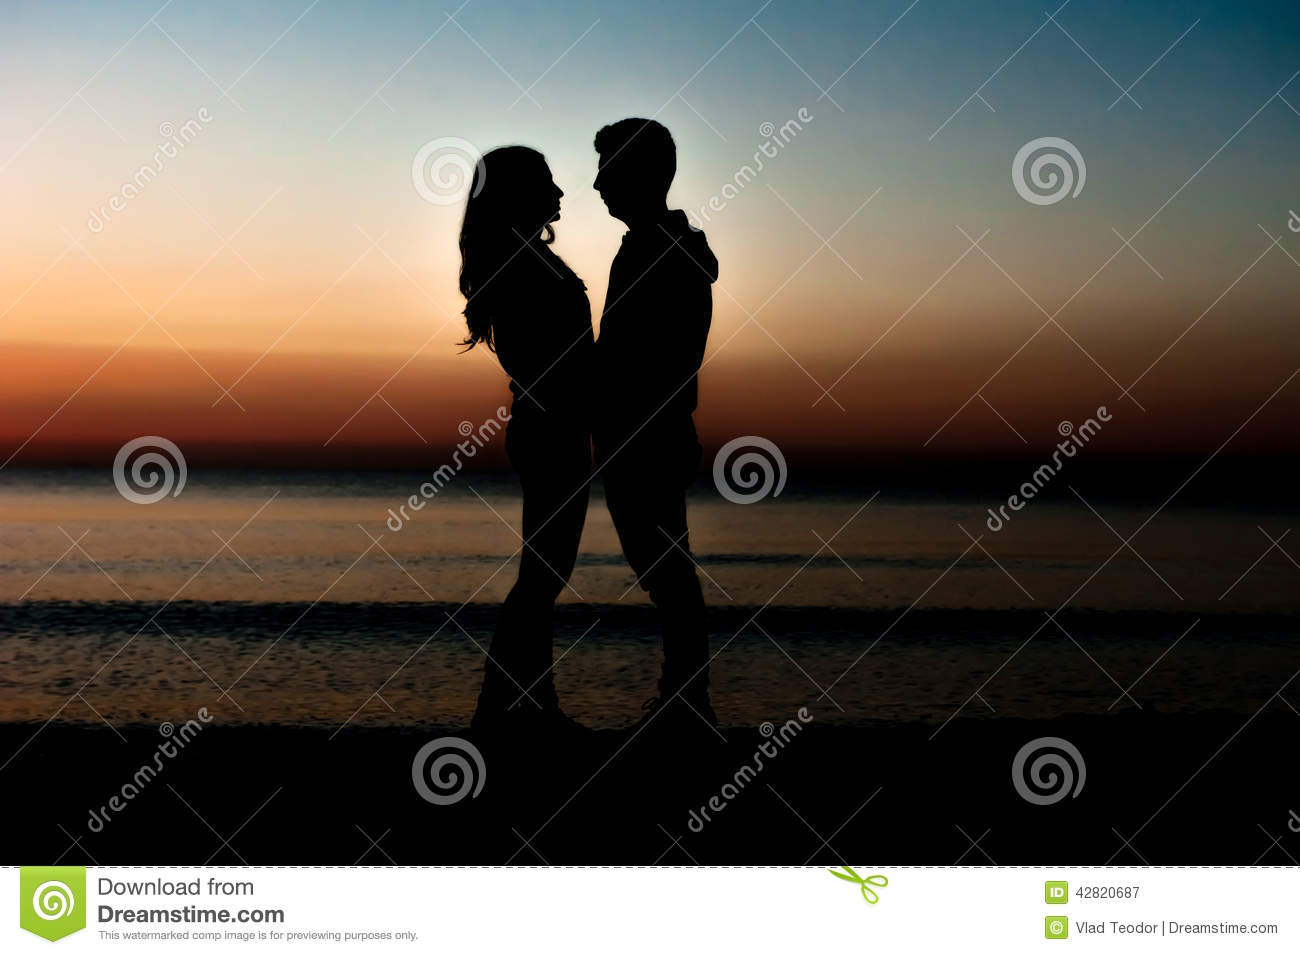 sunrise beach jewish single men Calculations of sunrise and sunset in myrtle beach – south carolina – usa for april 2018 generic astronomy calculator to calculate times for sunrise, sunset, moonrise, moonset for many cities, with daylight saving time and time zones taken in account.